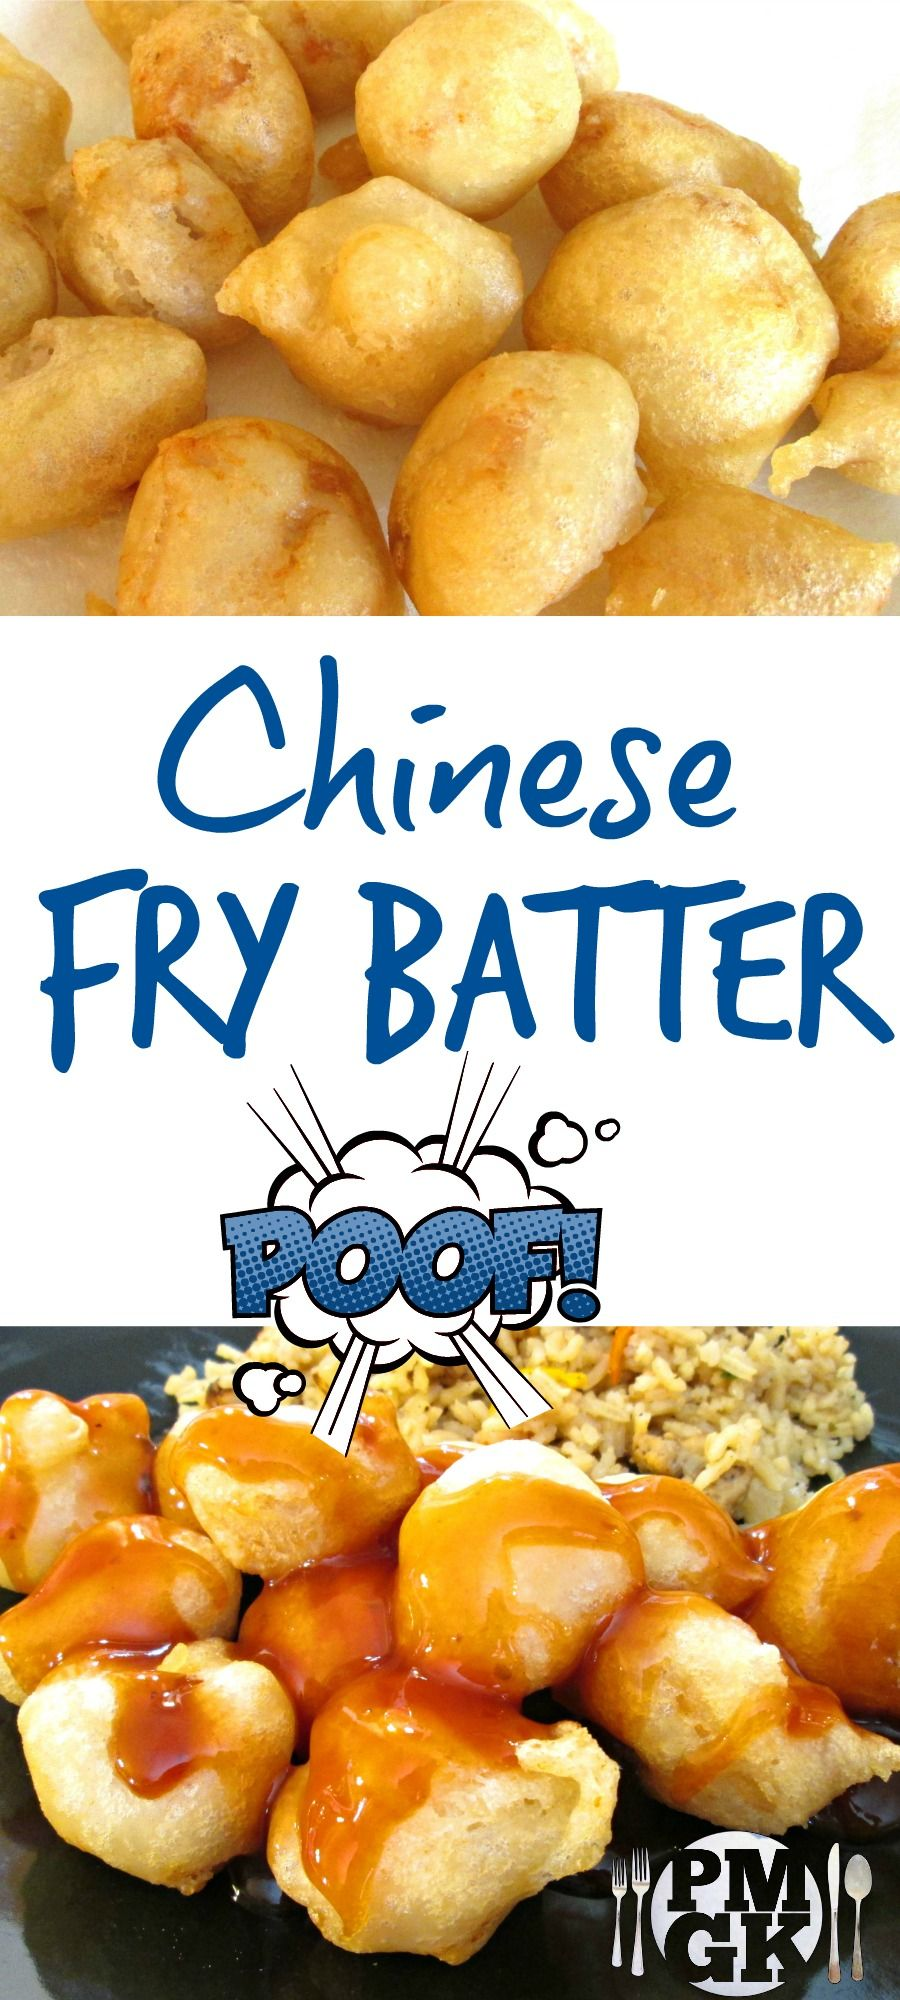 Chinese fry batter chicken pork shrimp oreos and cheesecake asian food recipes forumfinder Choice Image